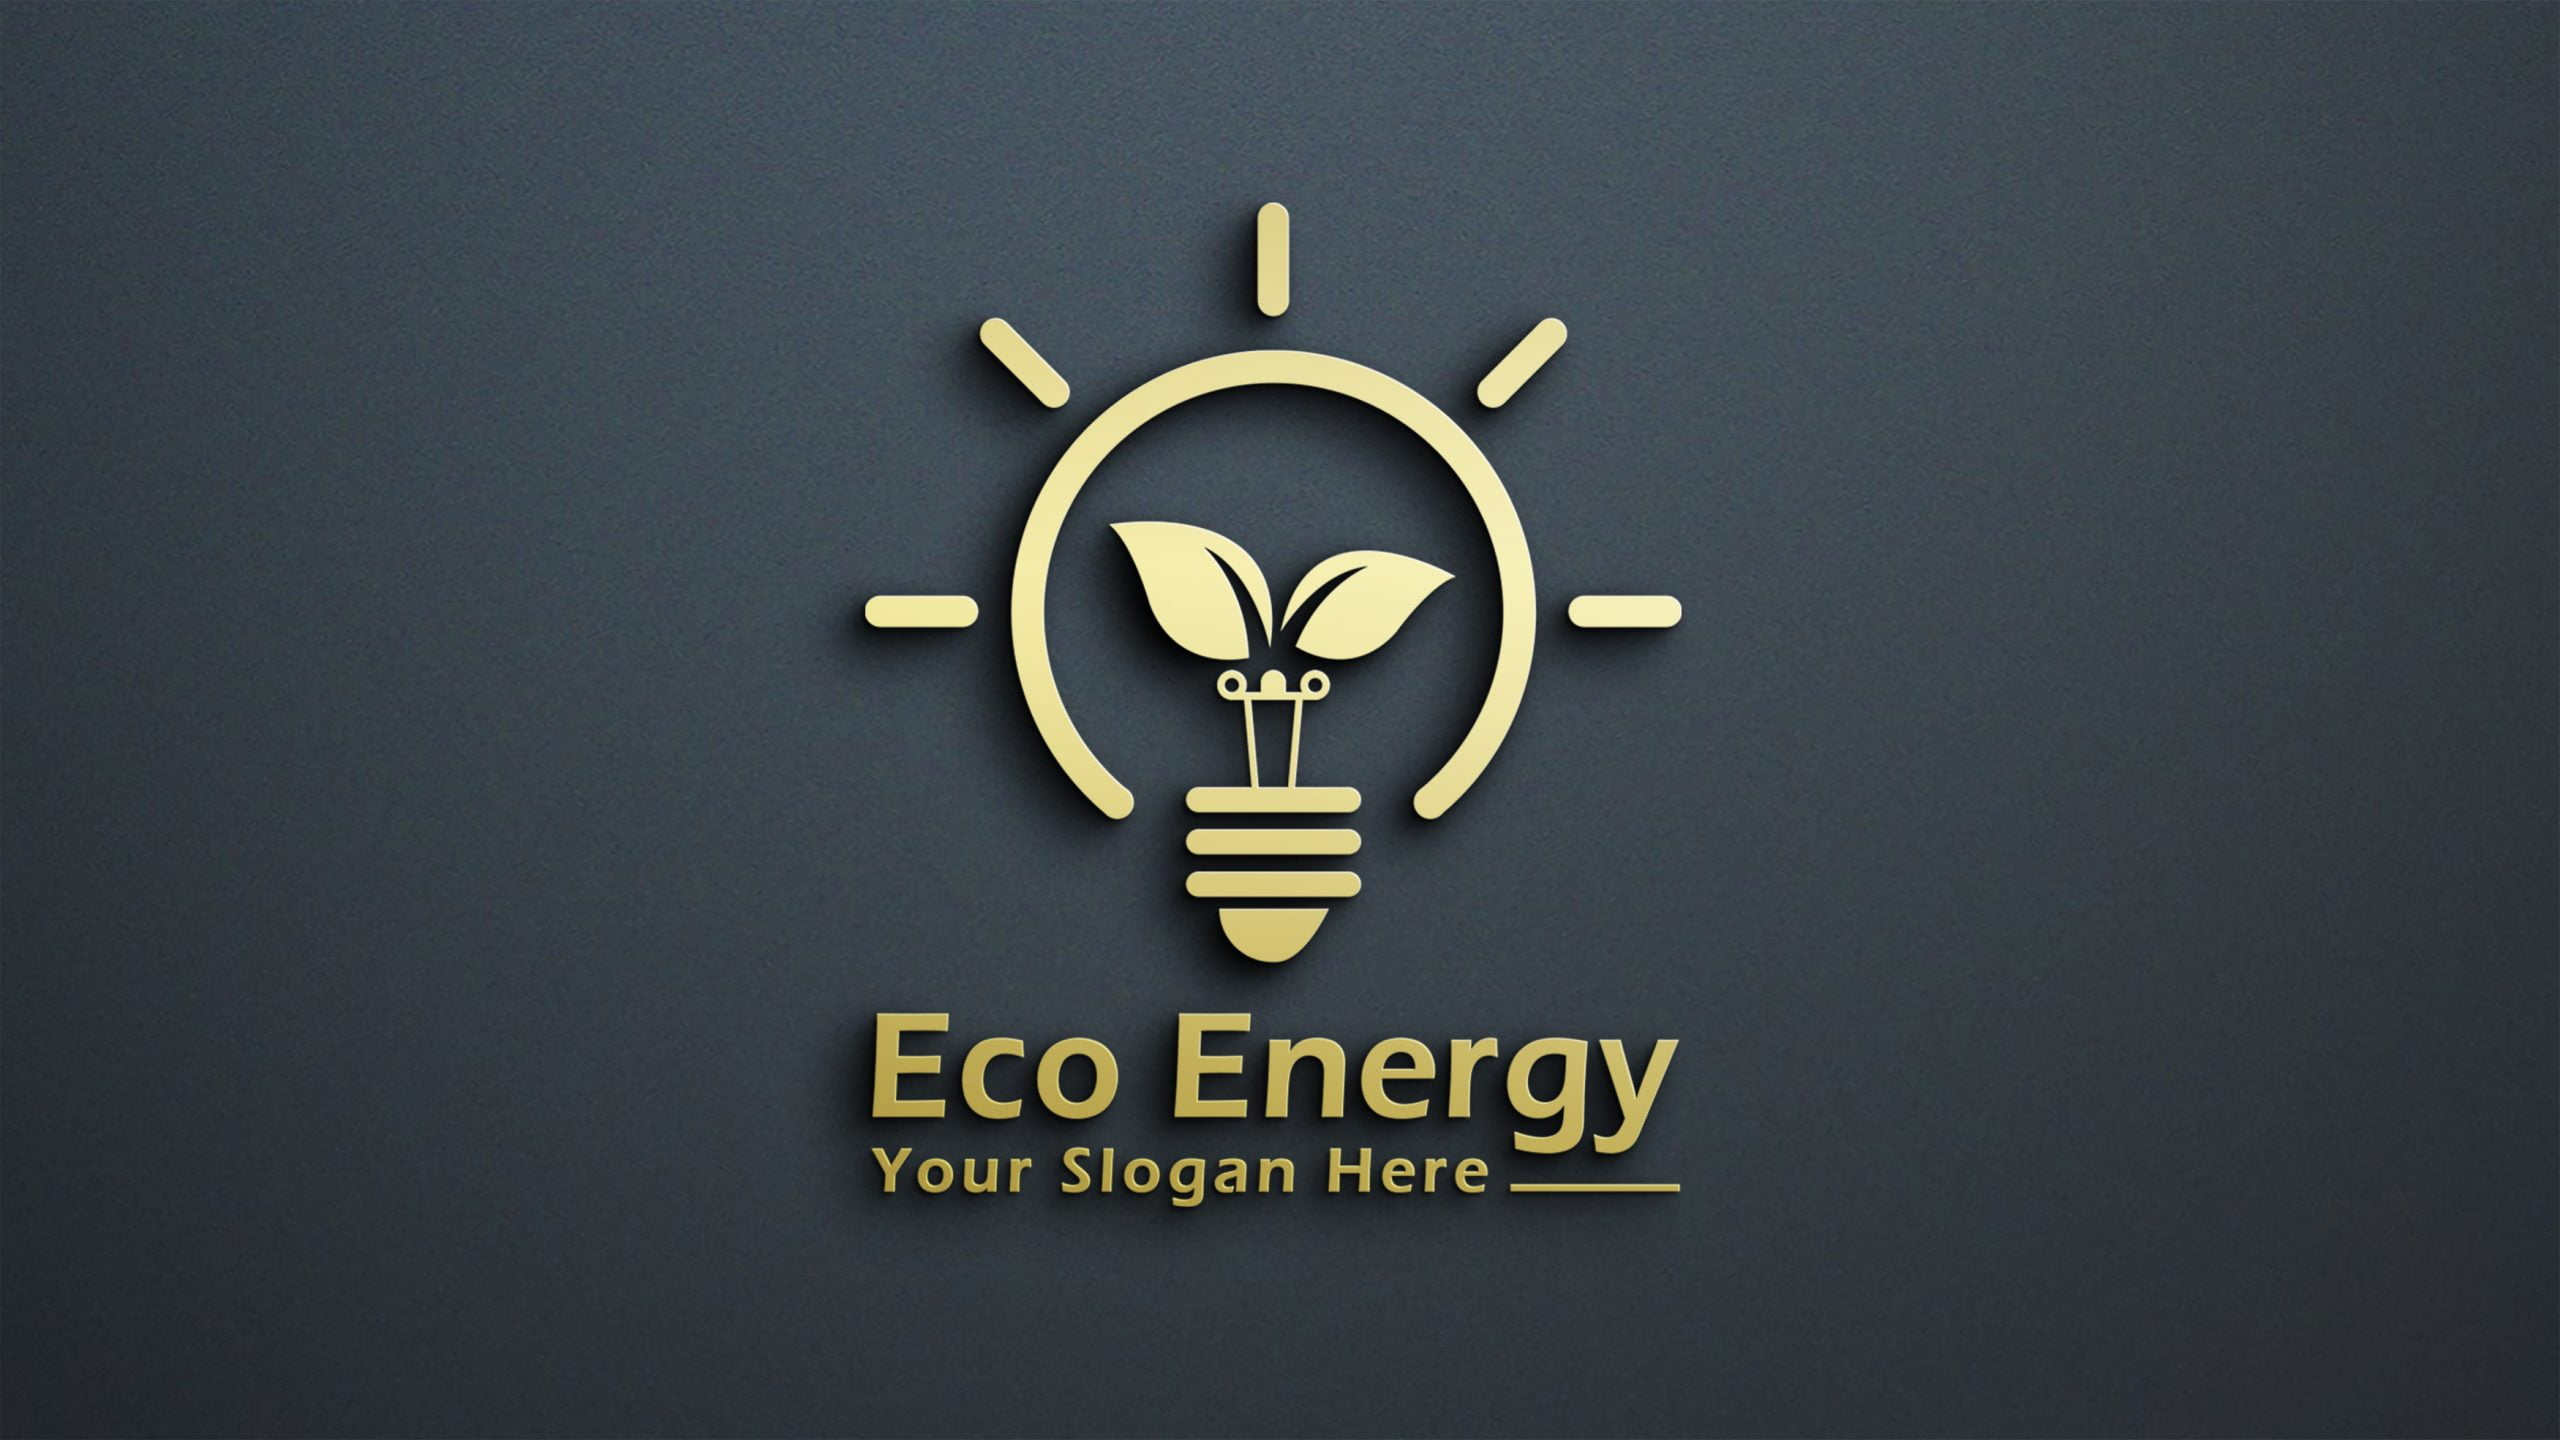 Free-Download-Eco-Energy-Light-Bulb-with-Leaves